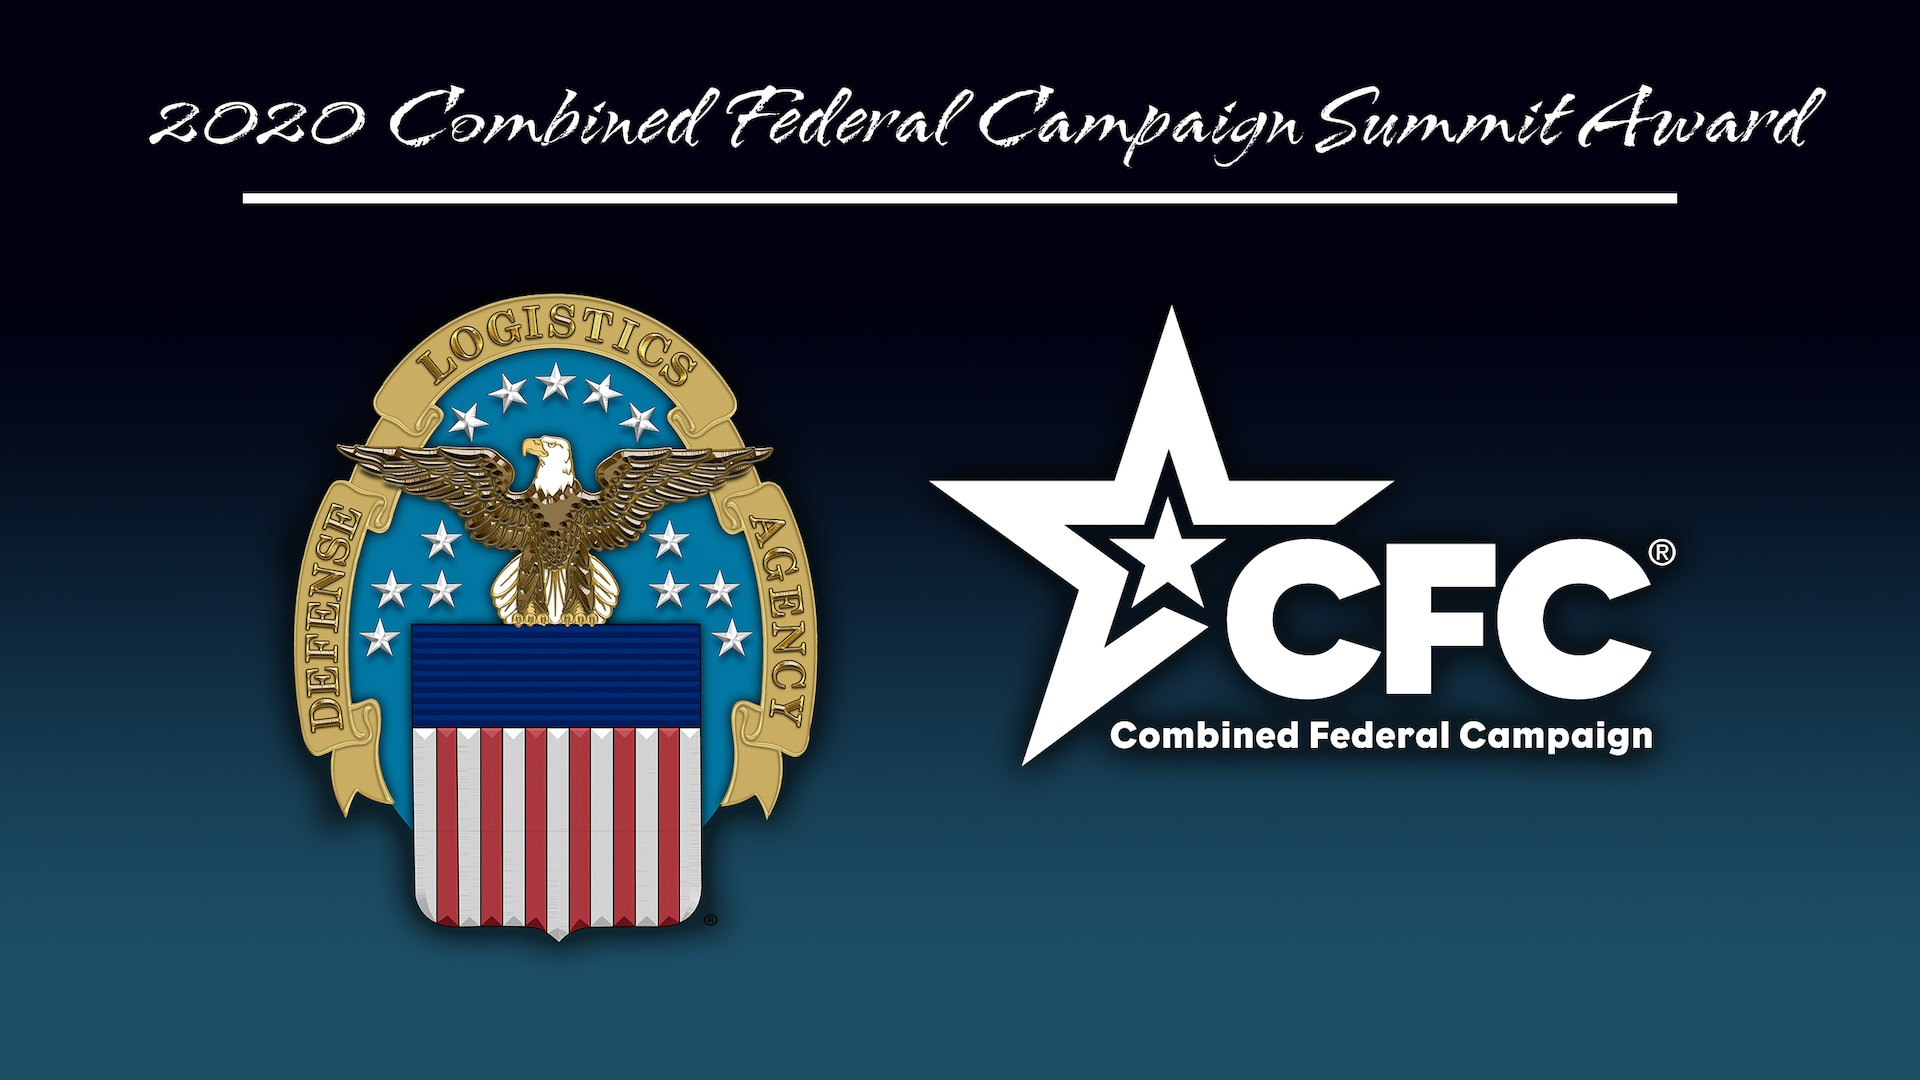 CFC logo with white stars and the DLA logo with an eagle, stars and stripes and the text: 2020 Combined Federal Campaign Summit Award